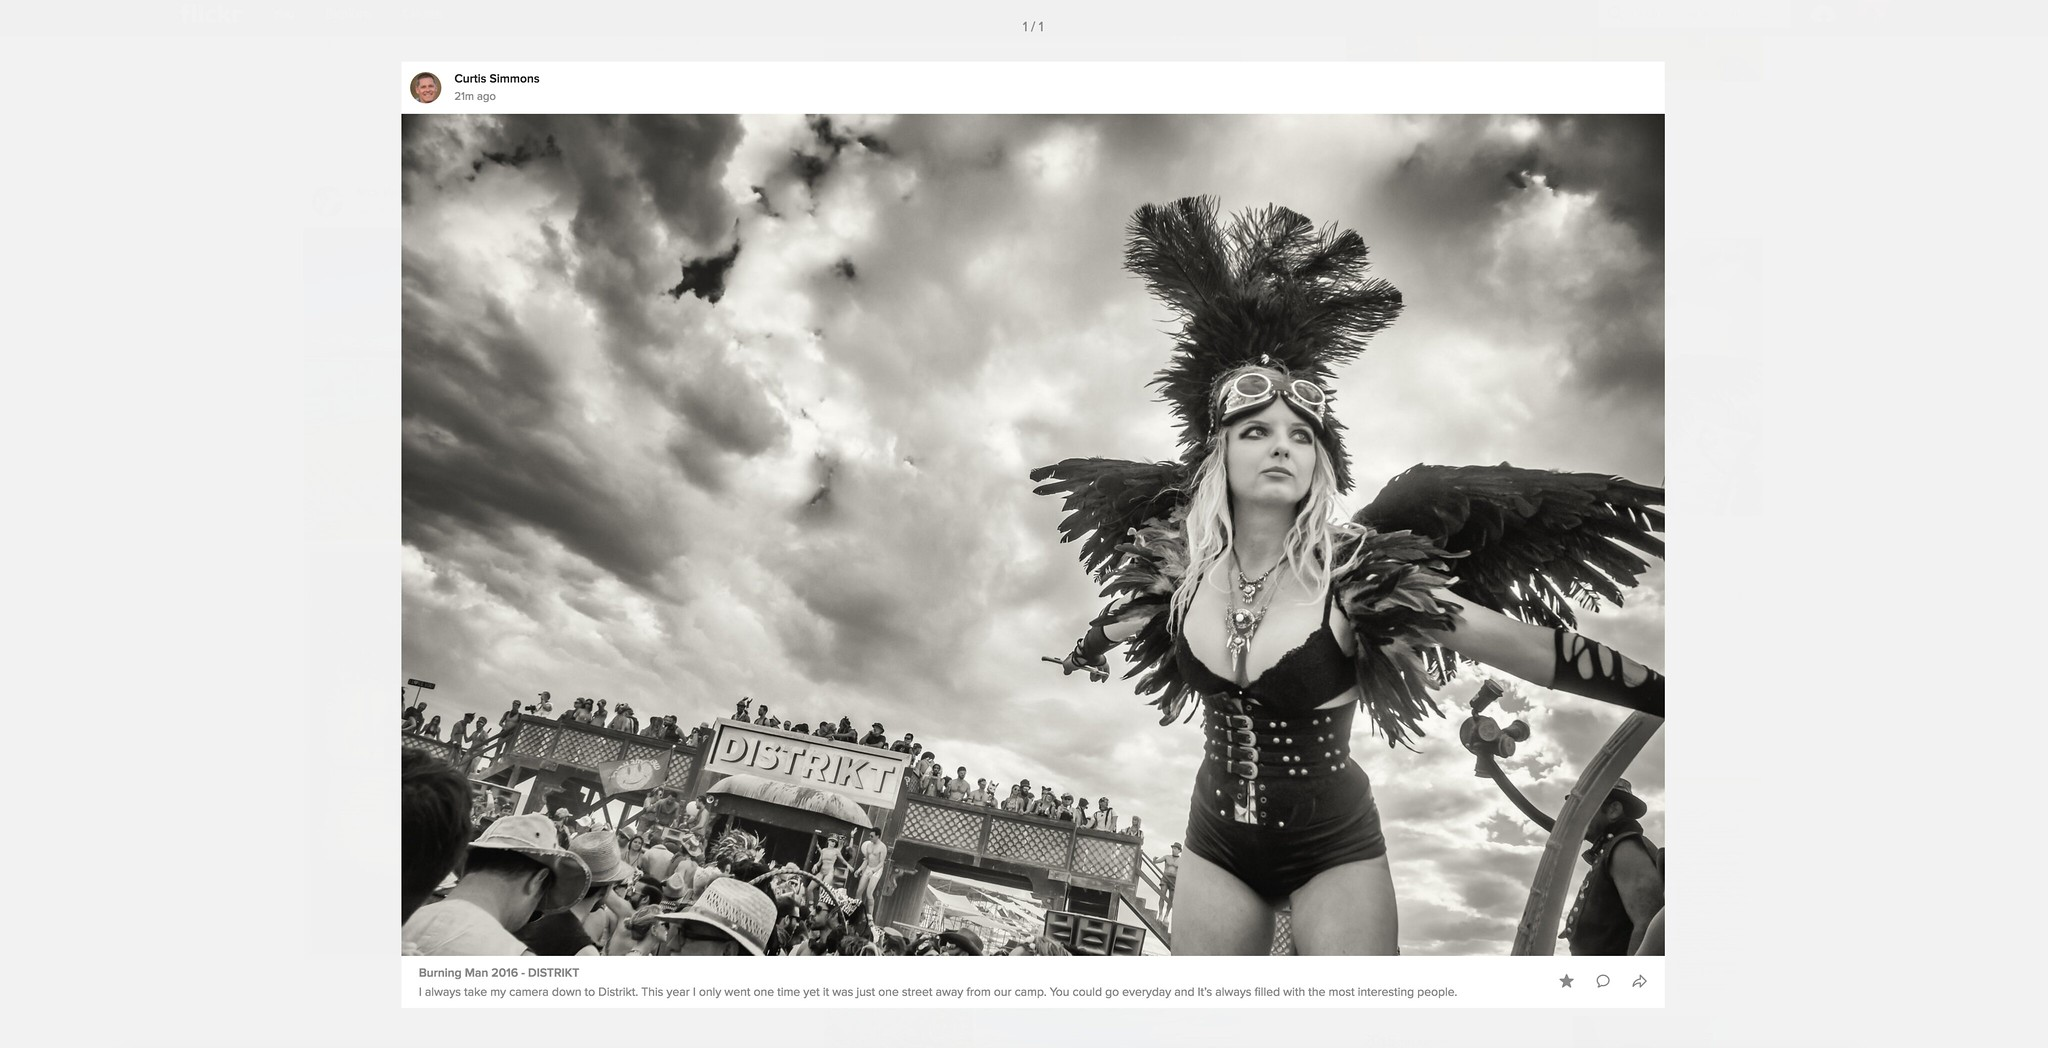 Previews in the New Flickr Feed Look Awesome!